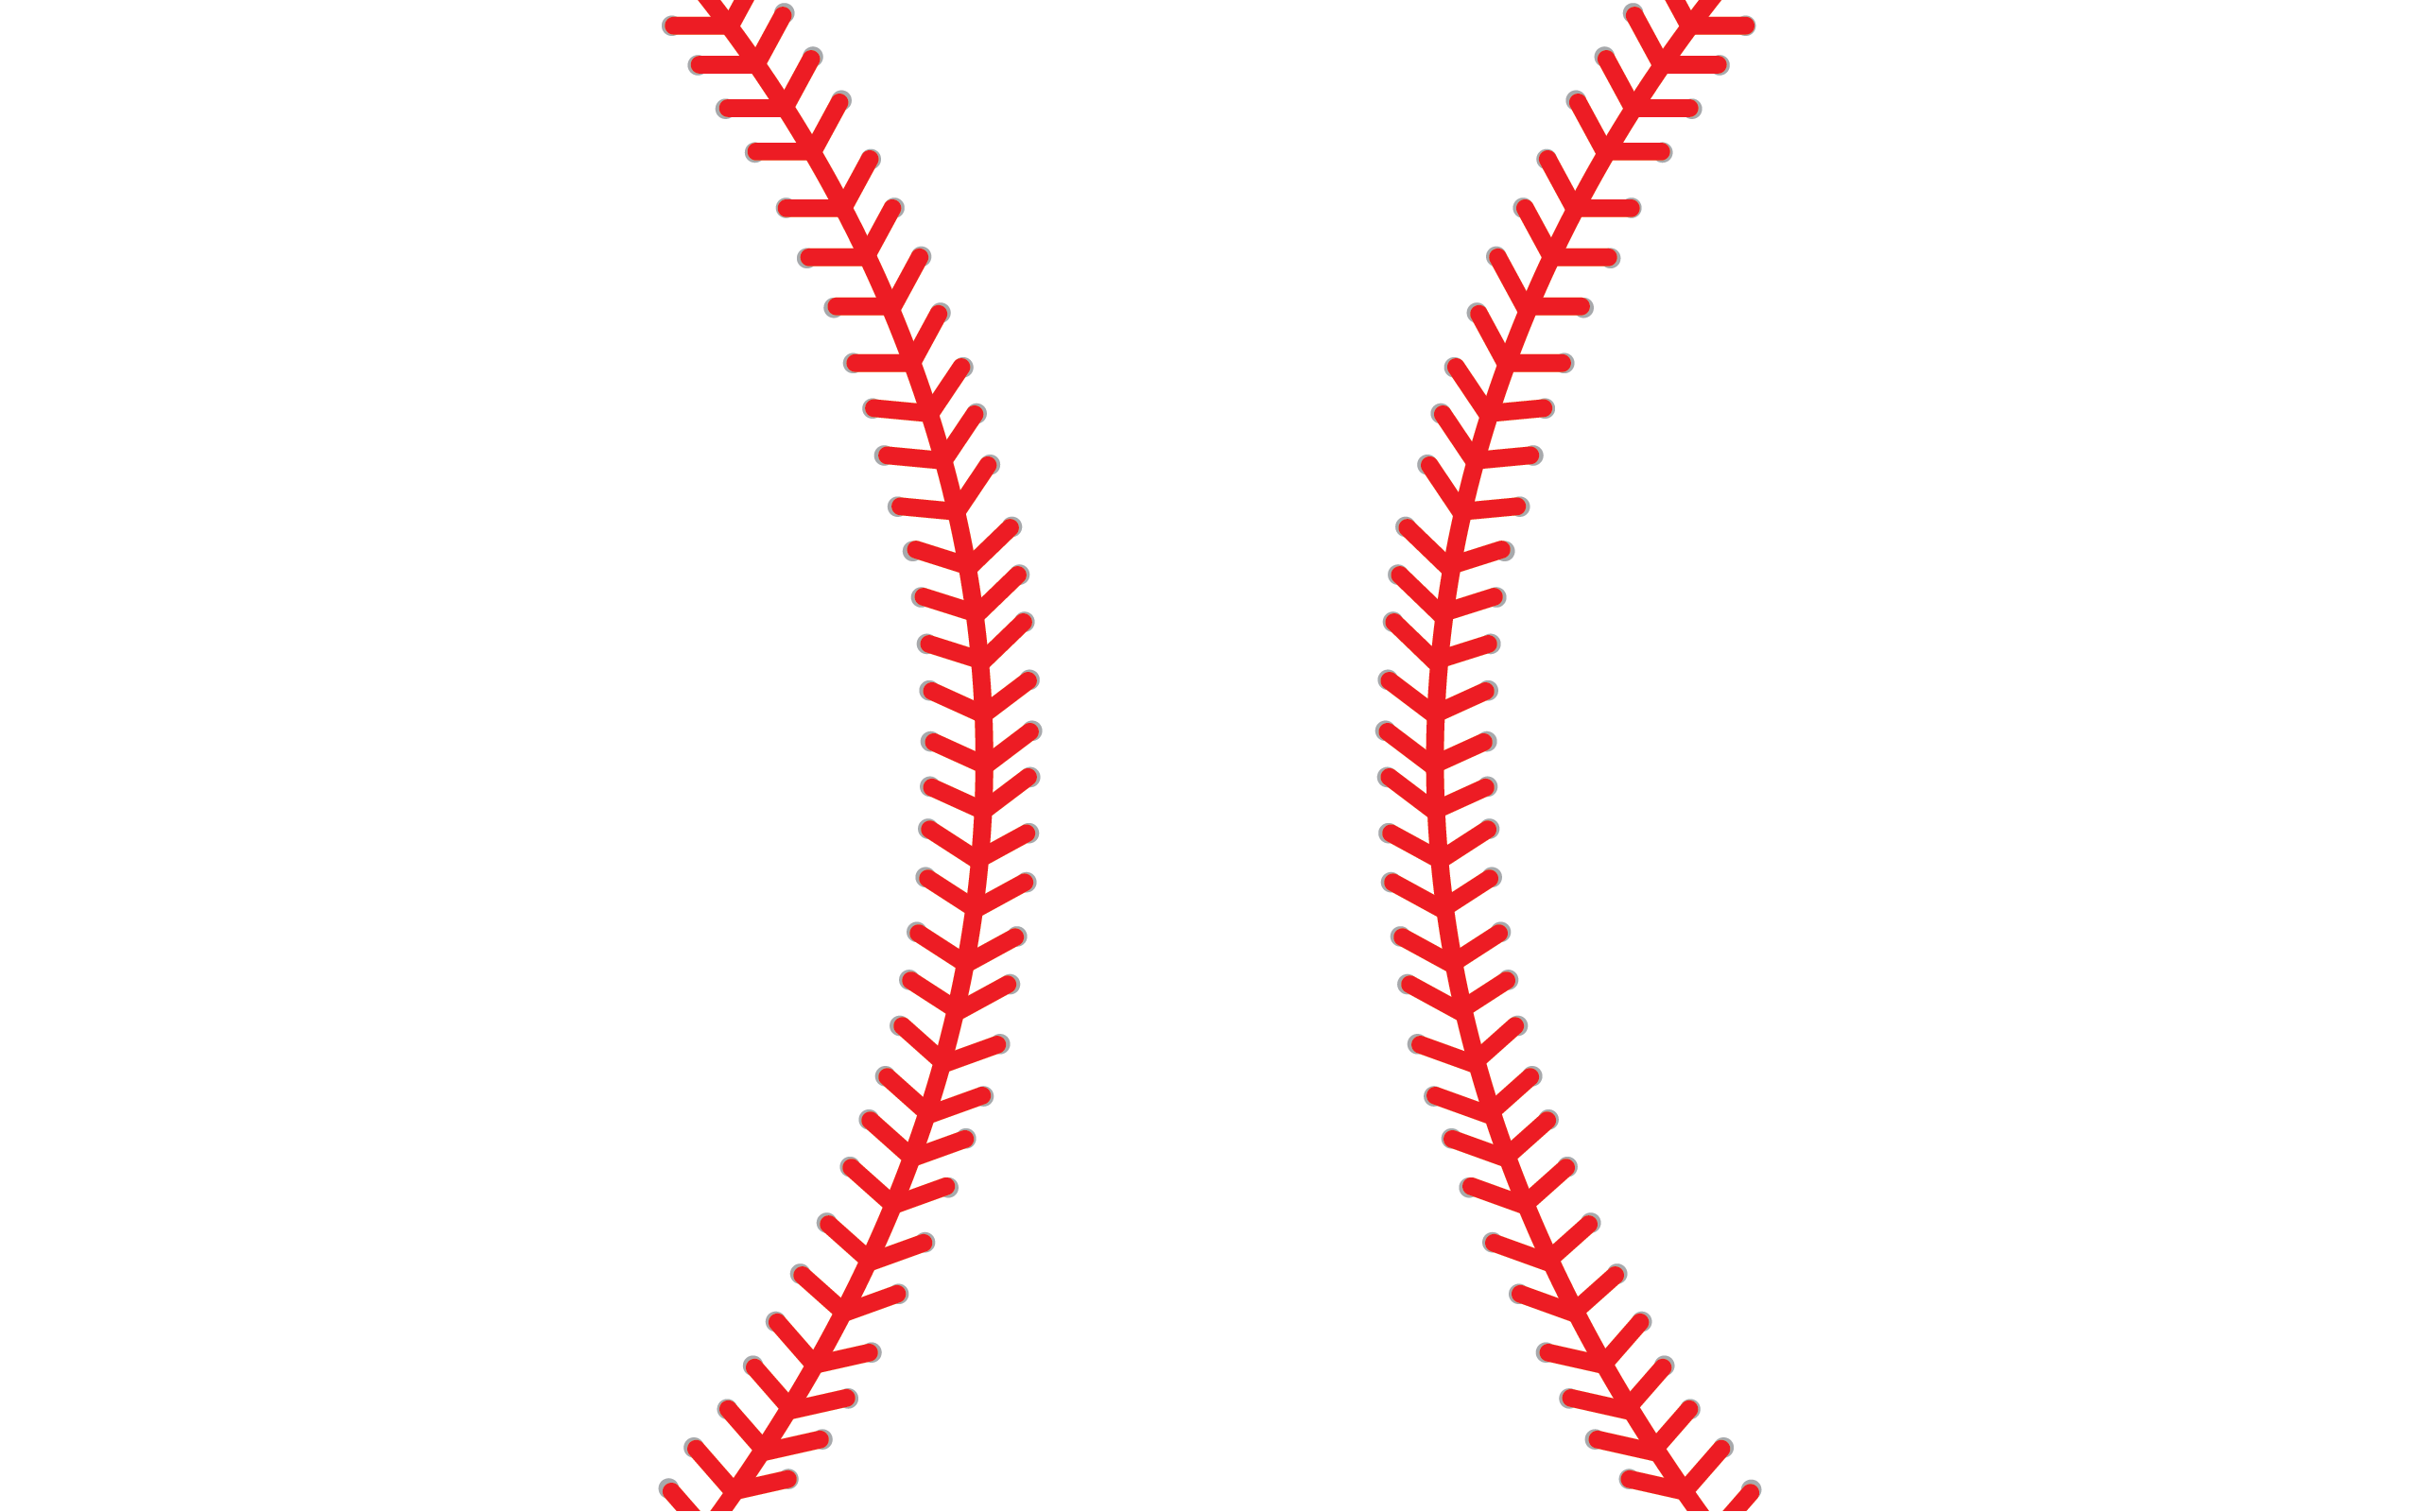 Baseball clipart high resolution #13